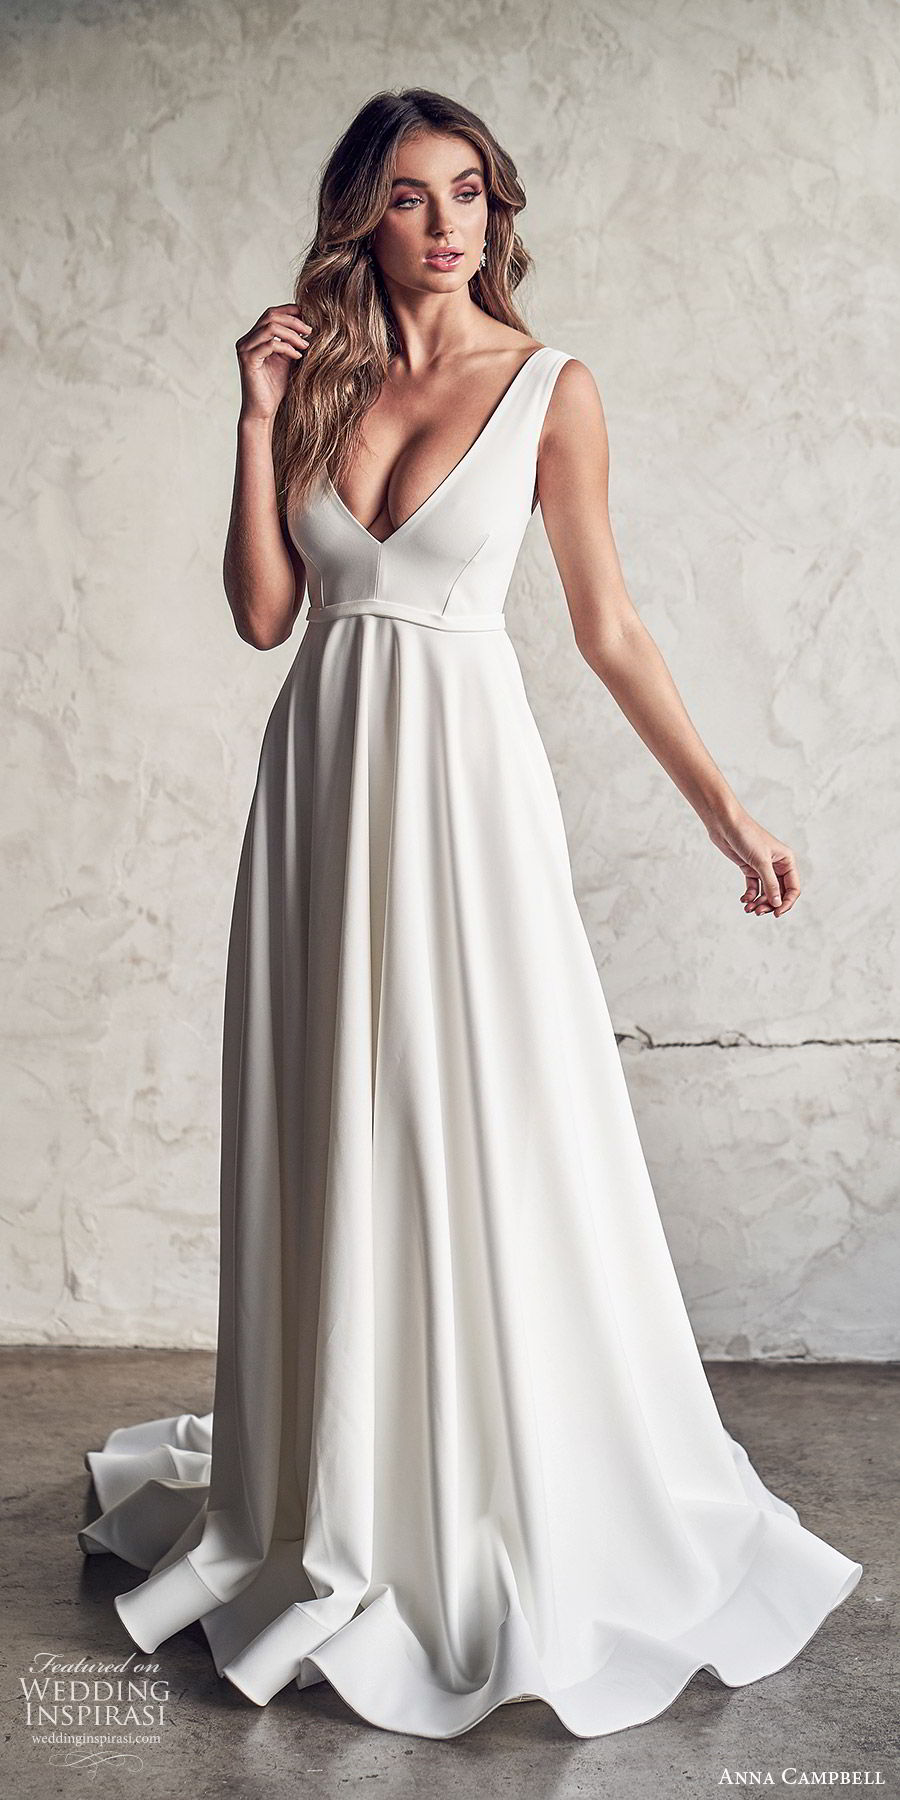 anna campbell 2020 bridal sleeveless thick straps plunging v neckline minimally embellished ball gown a line wedding dress (6) clean modern low v back chapel train mv